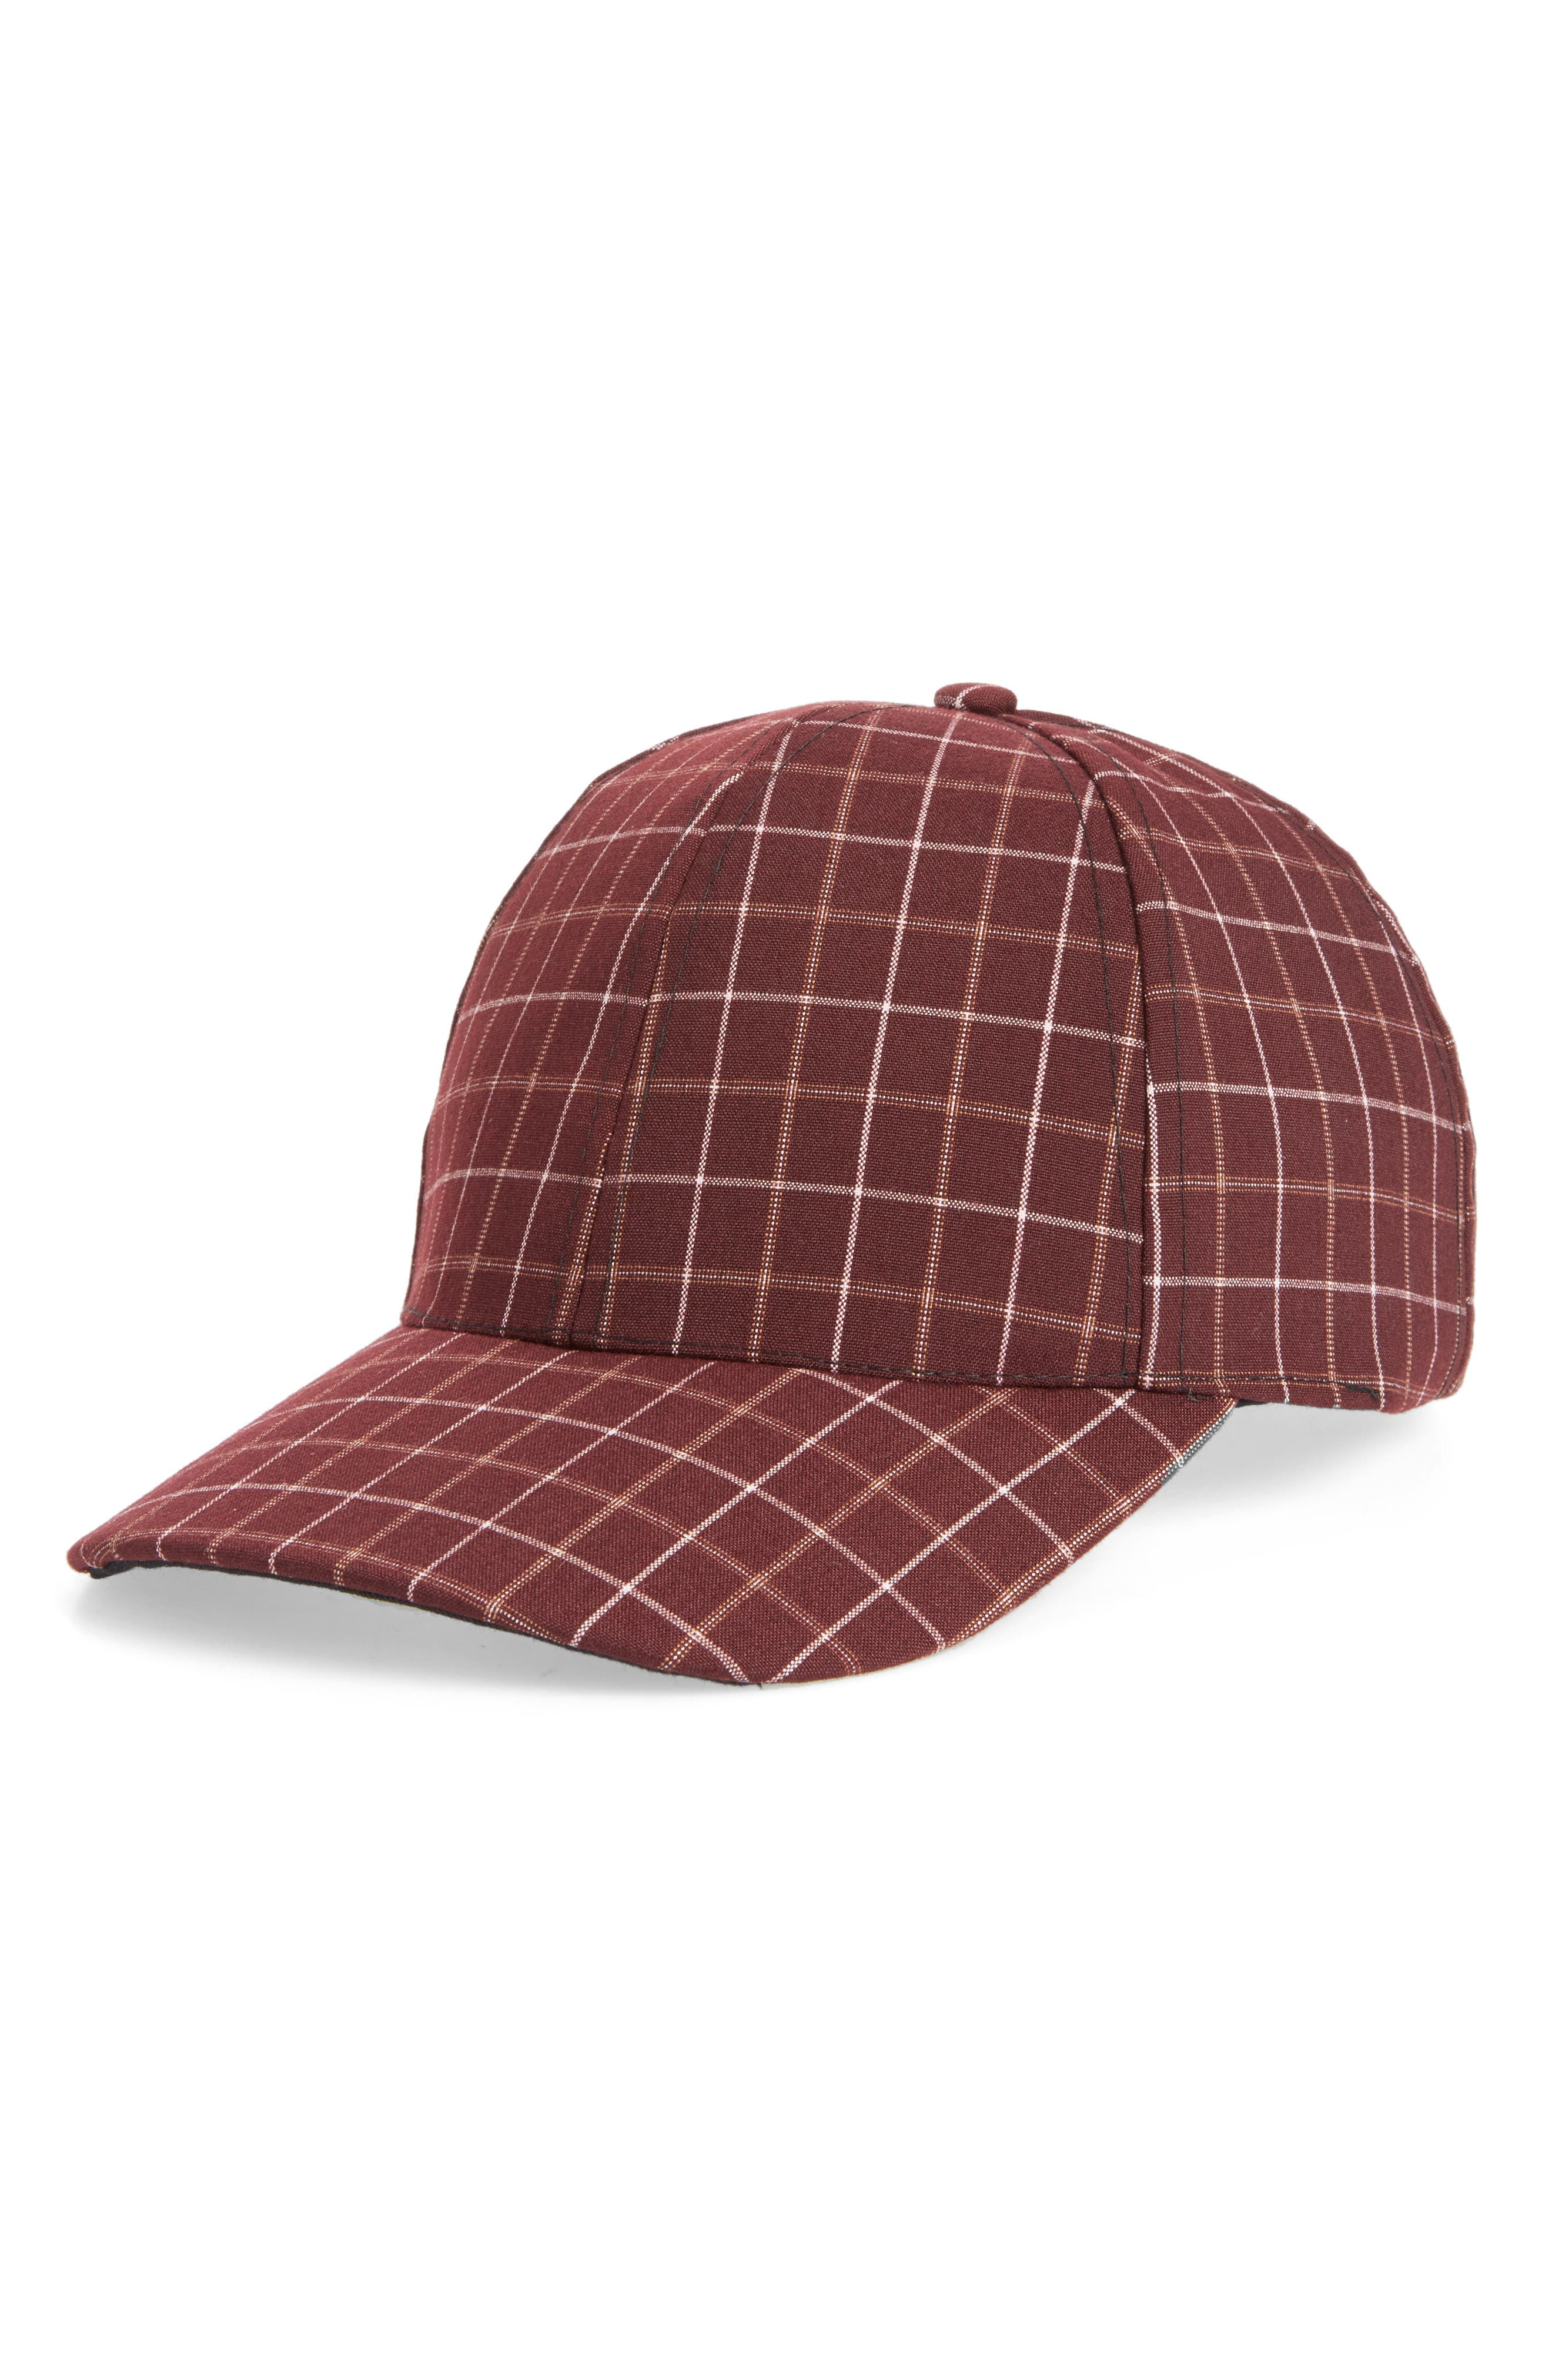 Windowpane Baseball Cap,                             Main thumbnail 1, color,